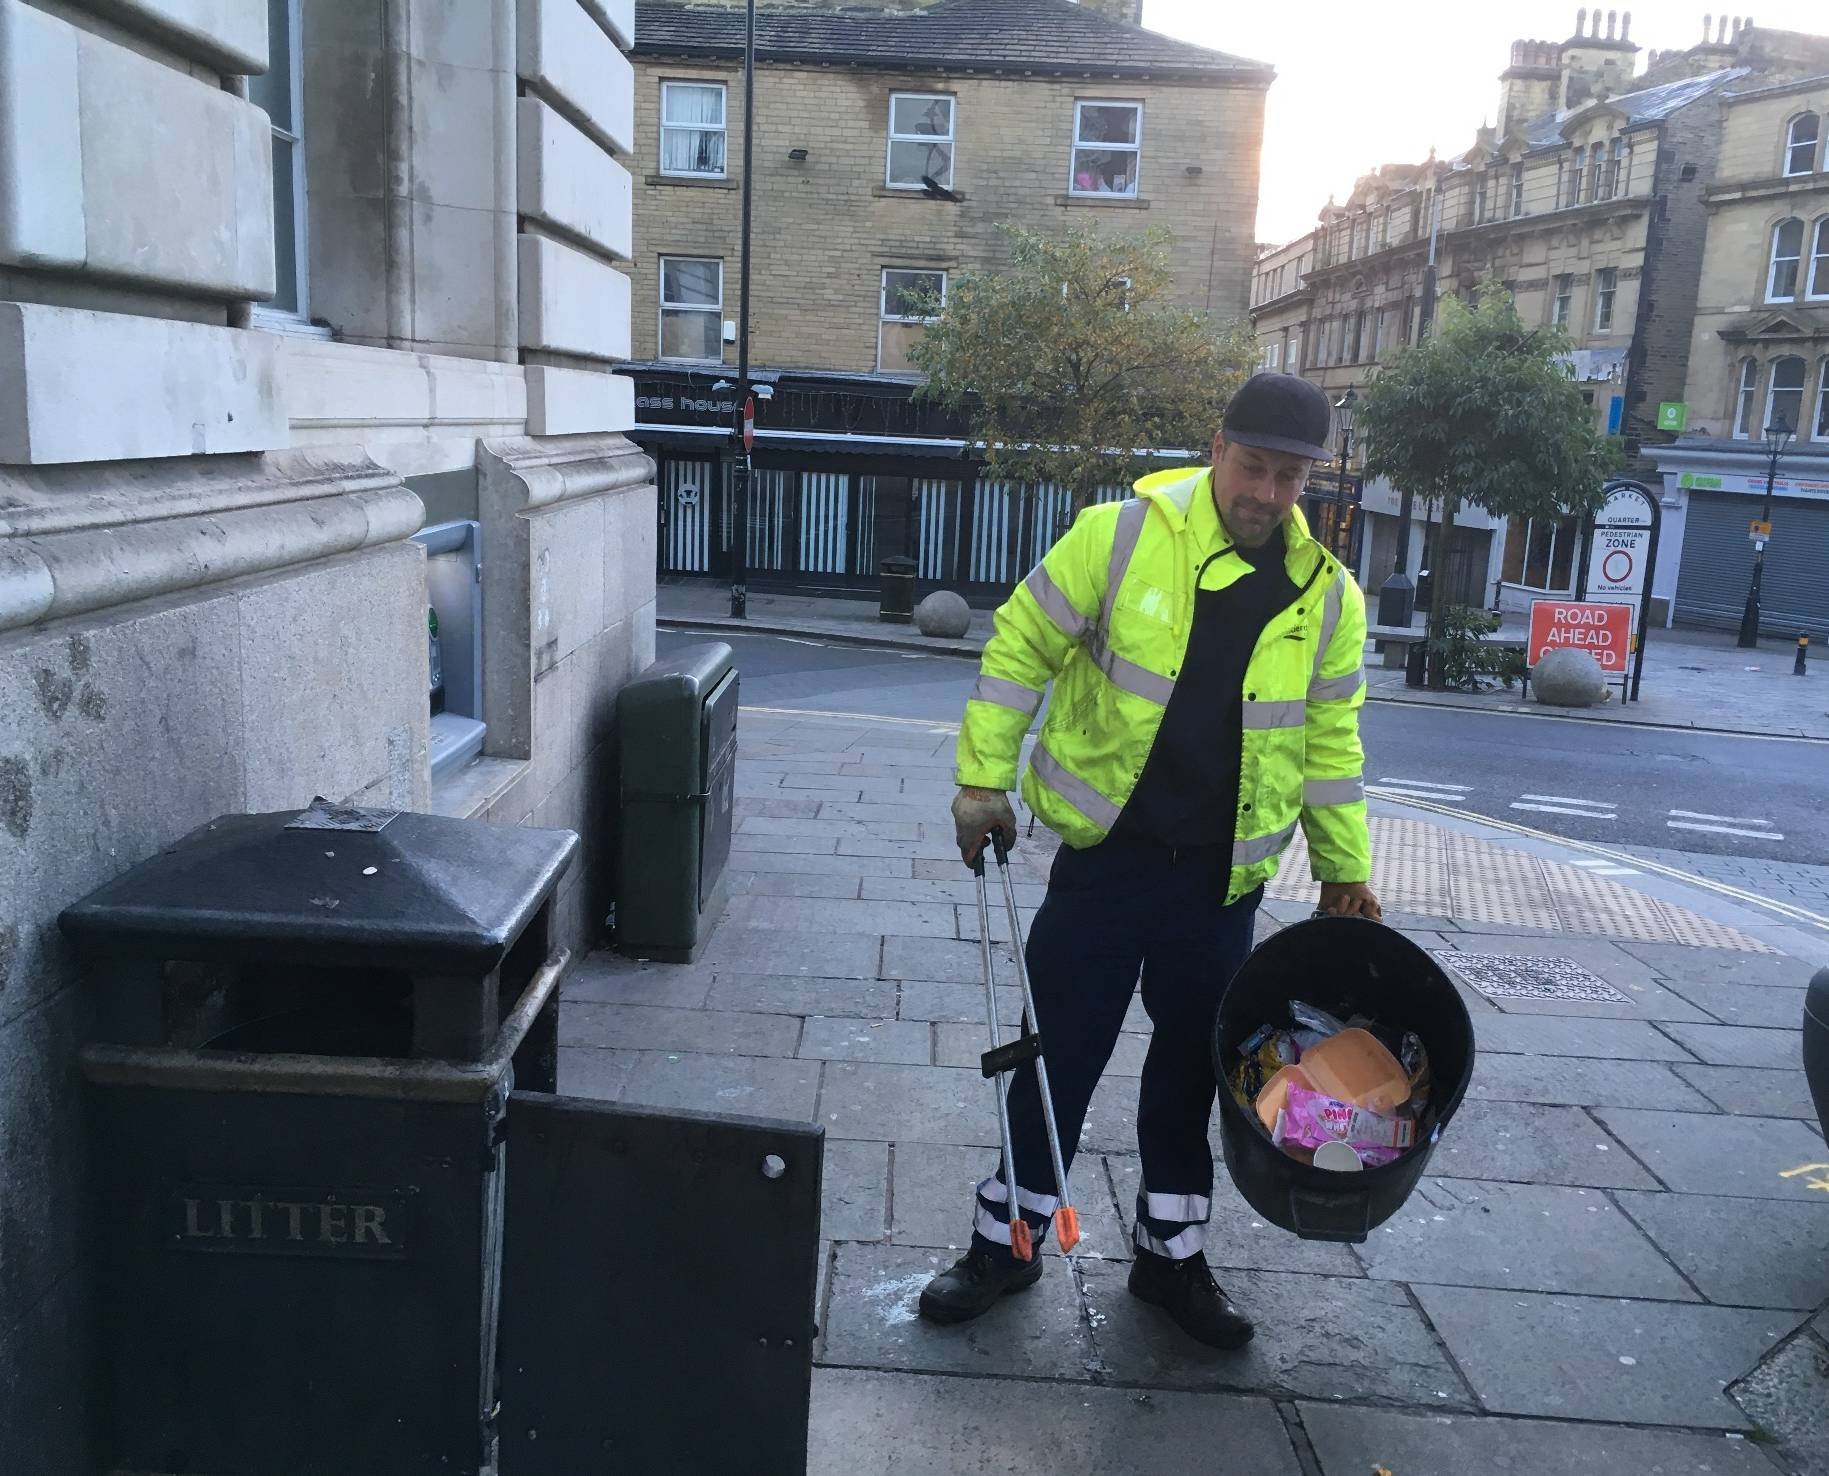 Clearing litter